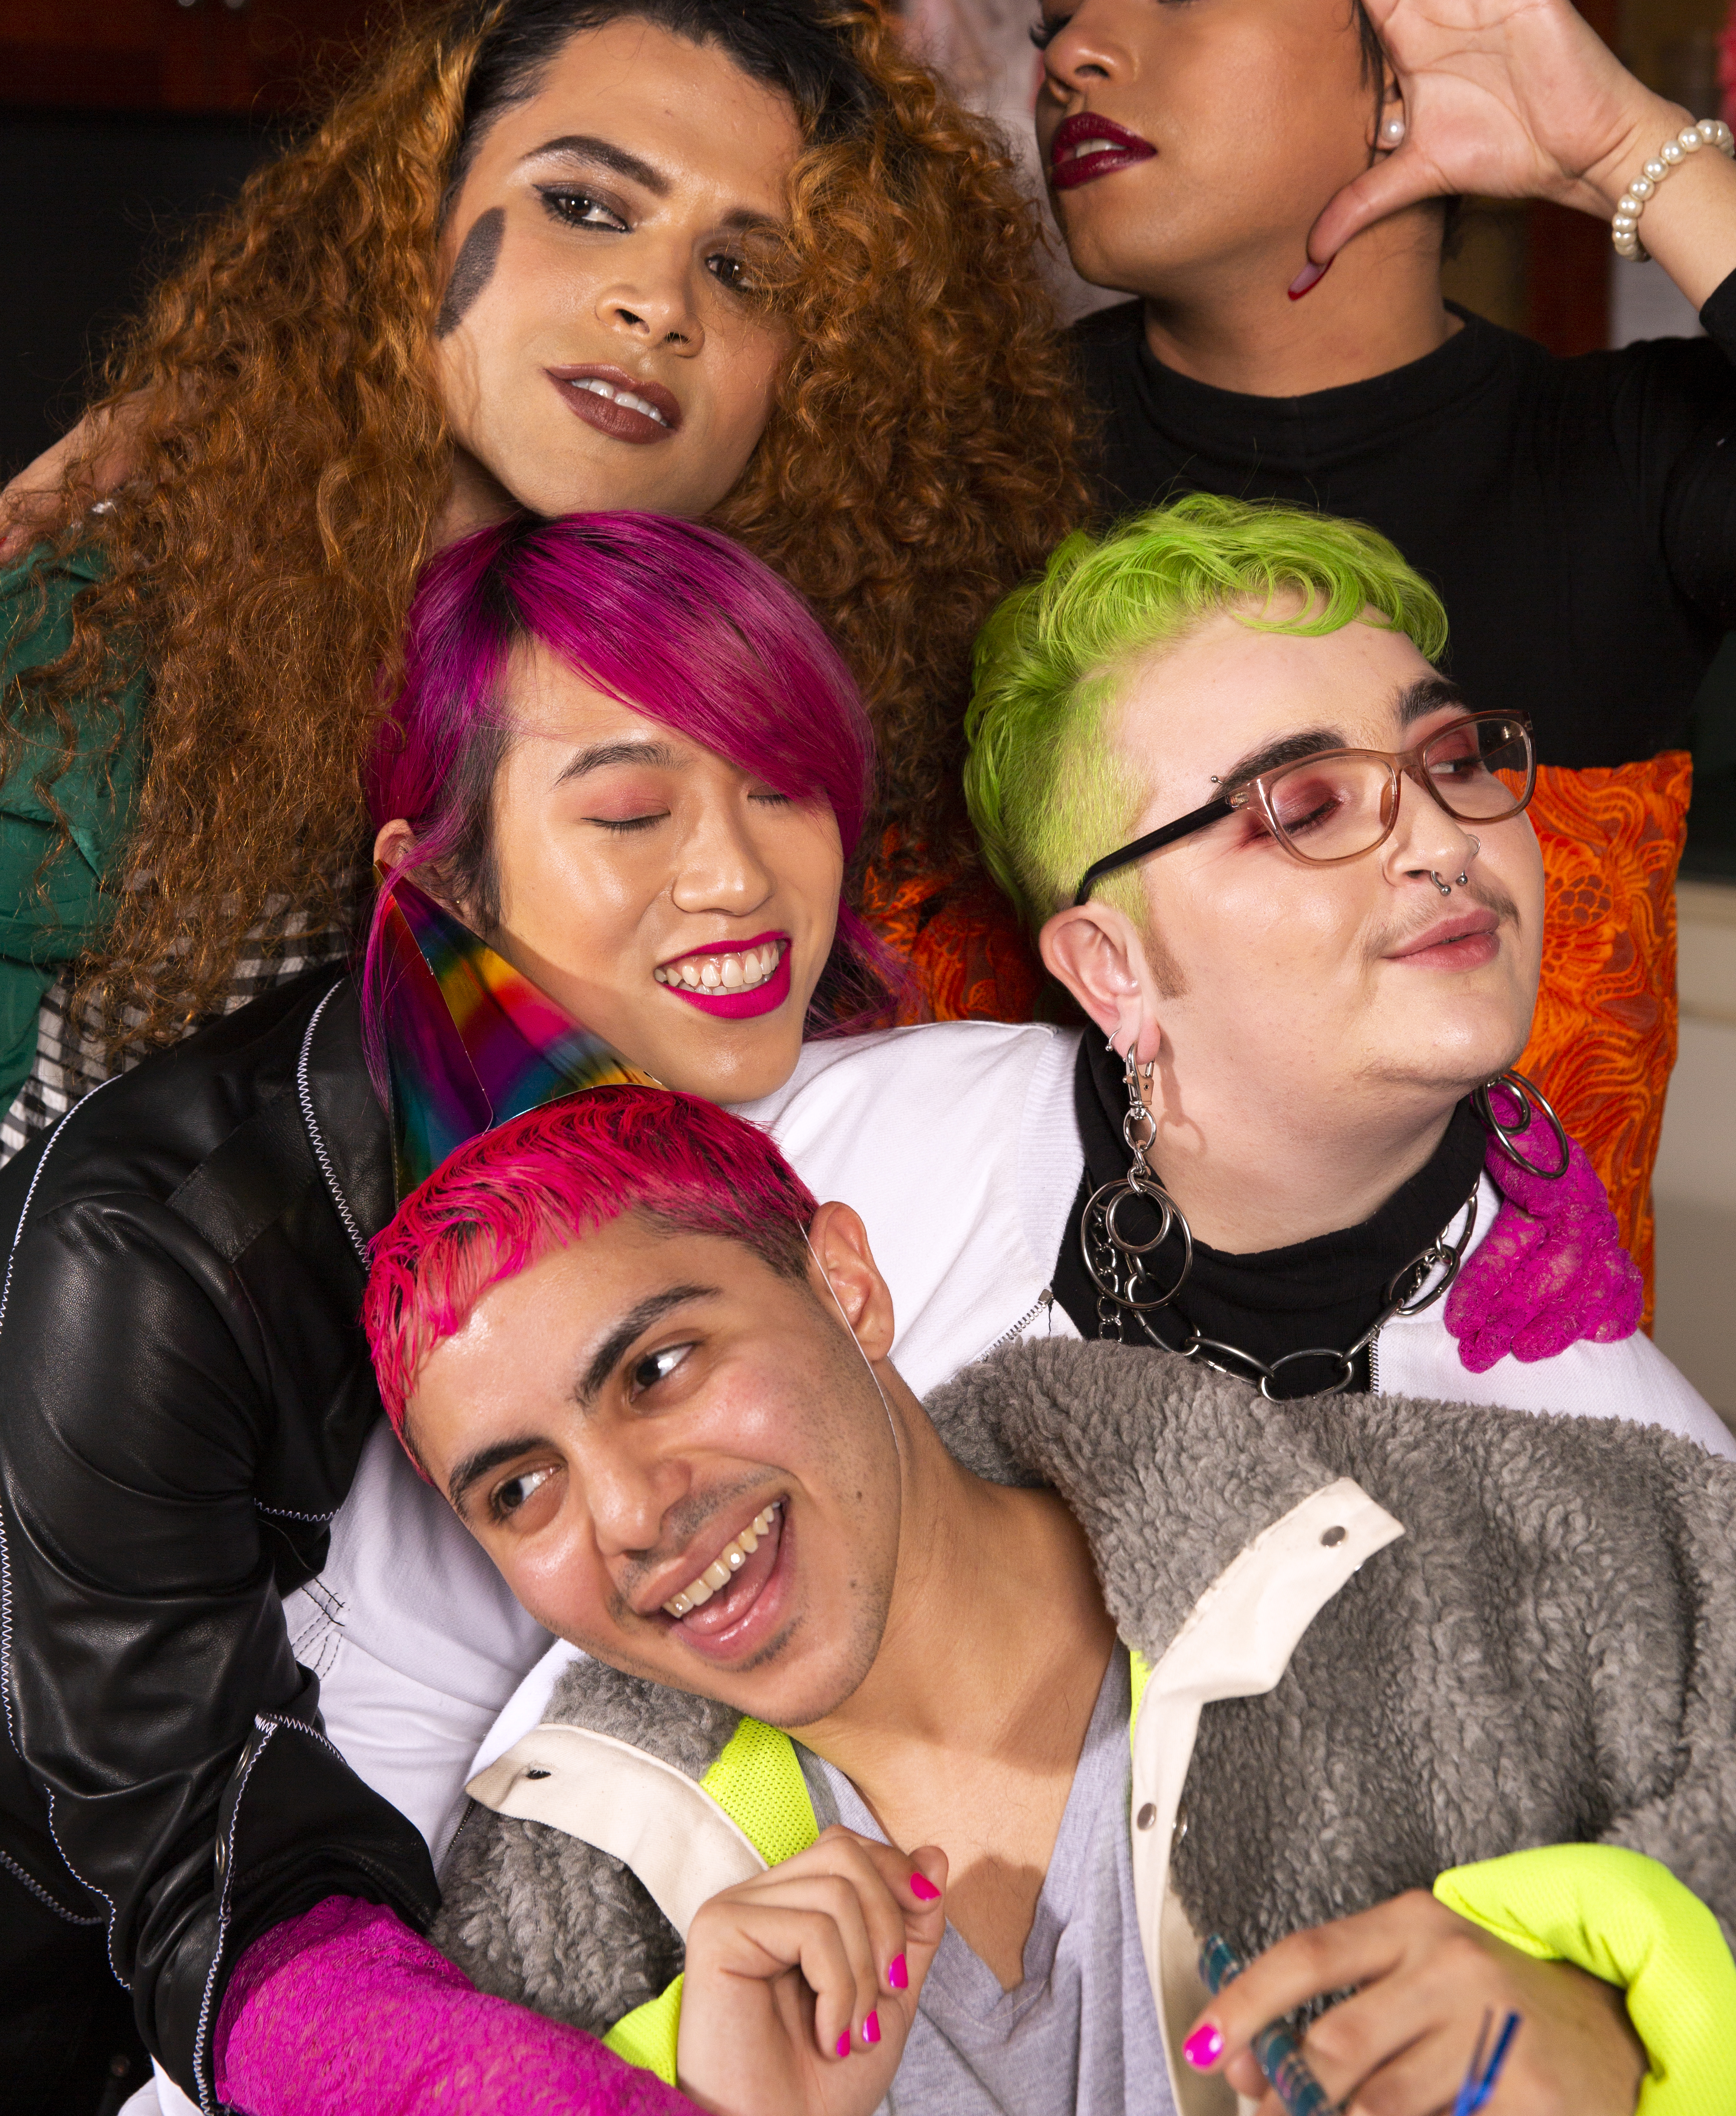 There's a new stock photo site devoted to gender nonbinary and trans representation, and the photos are beautiful